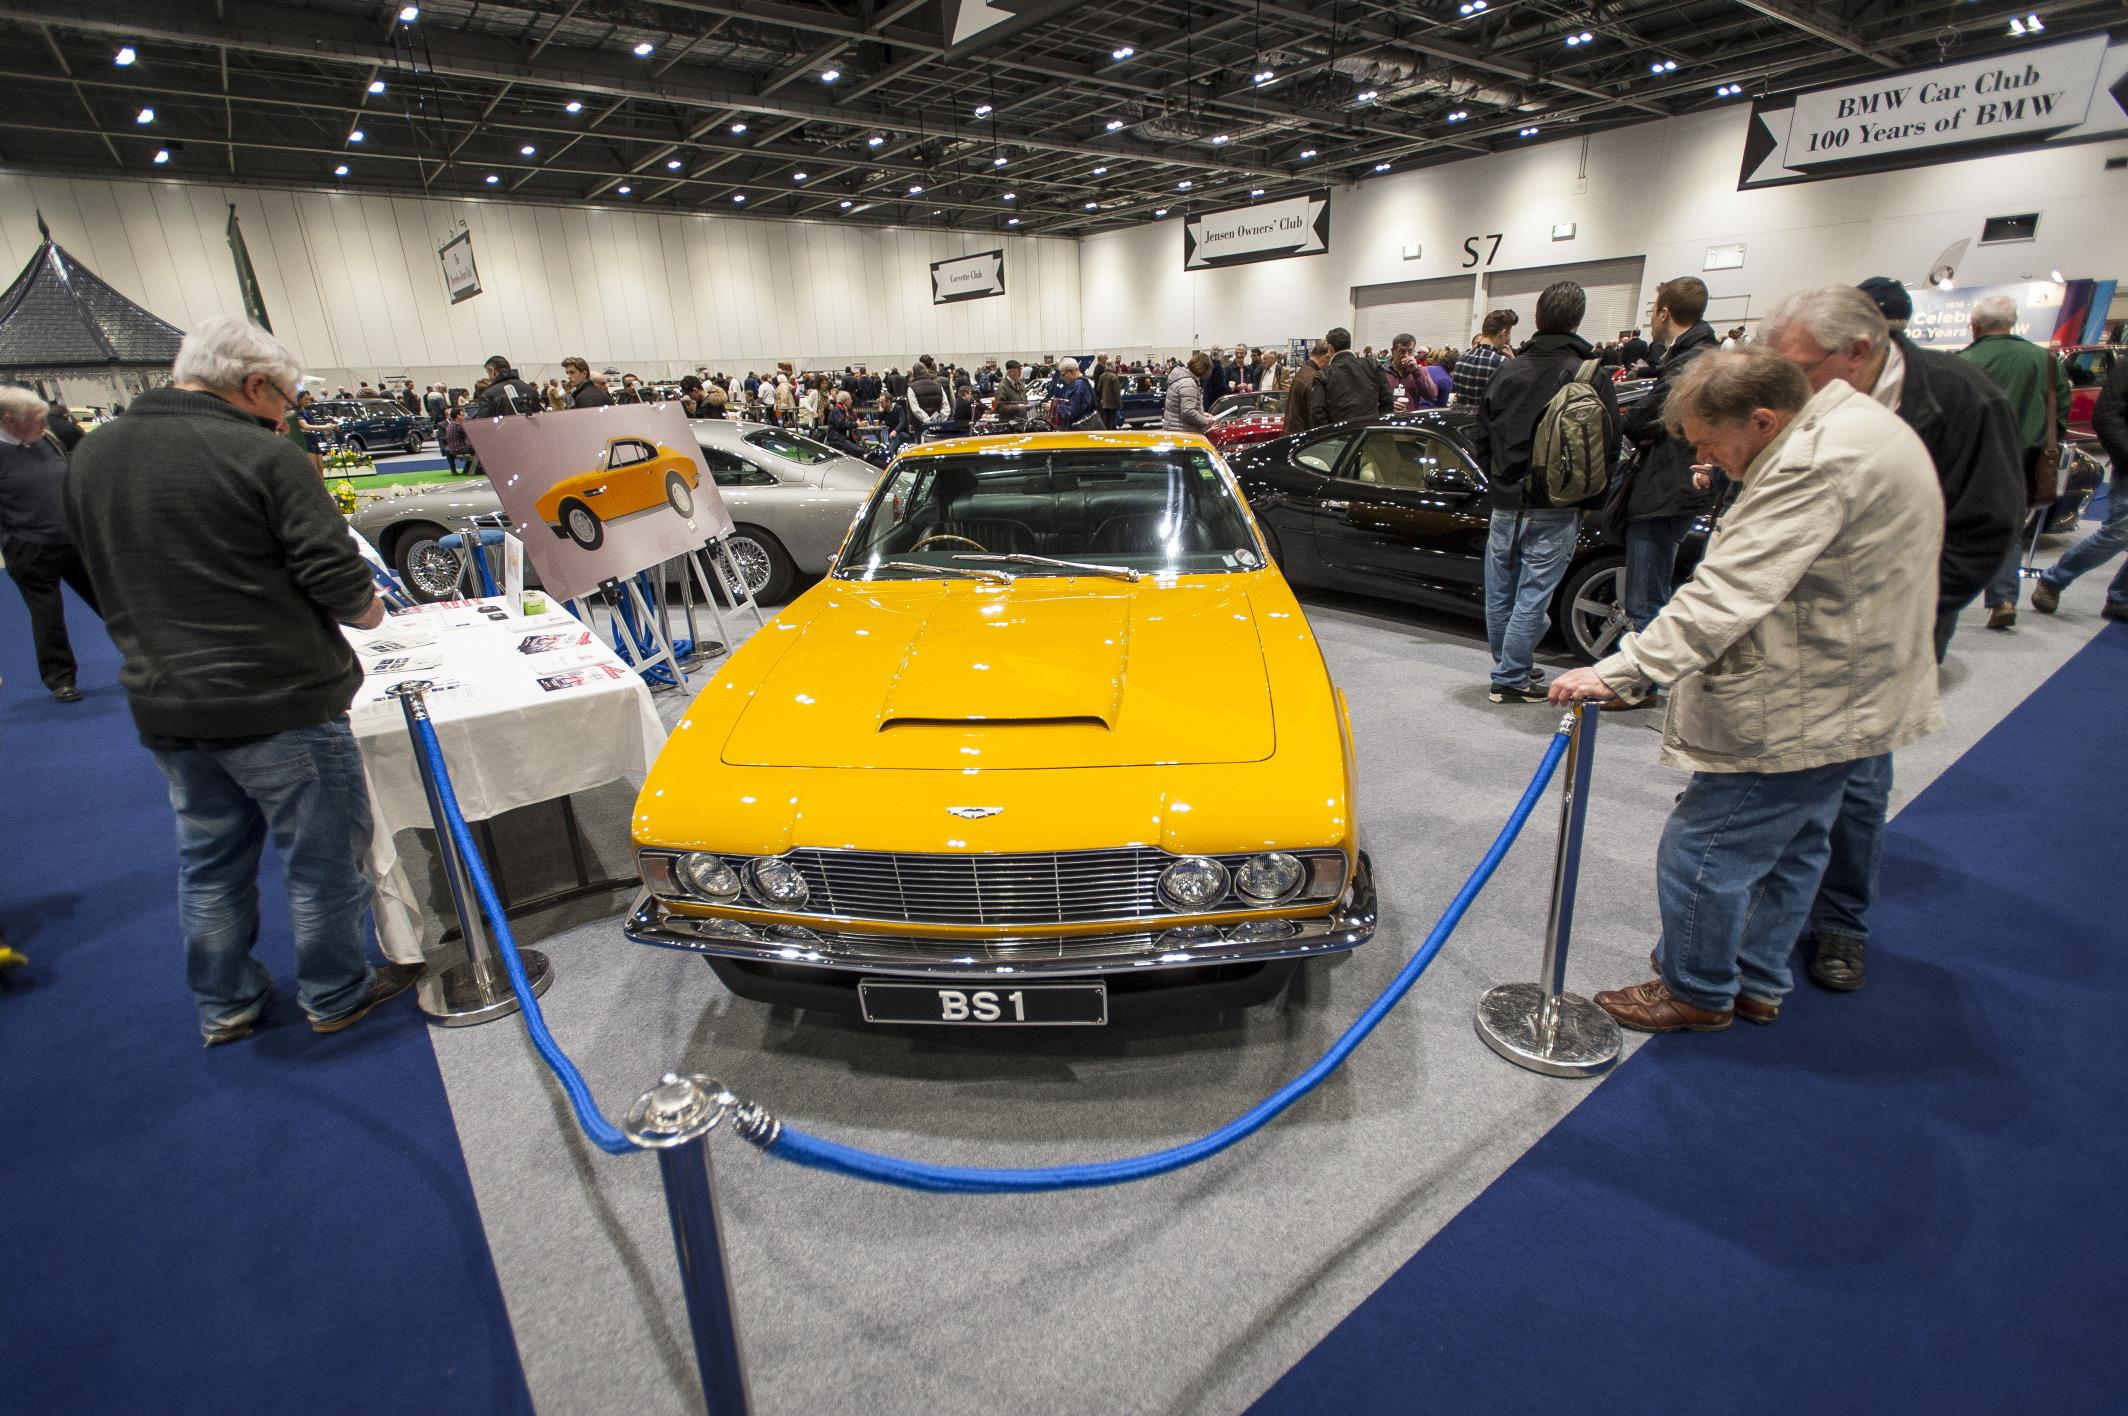 London Classic Car Show Embraces Two Exhibitions Auto Addicts - London classic car show